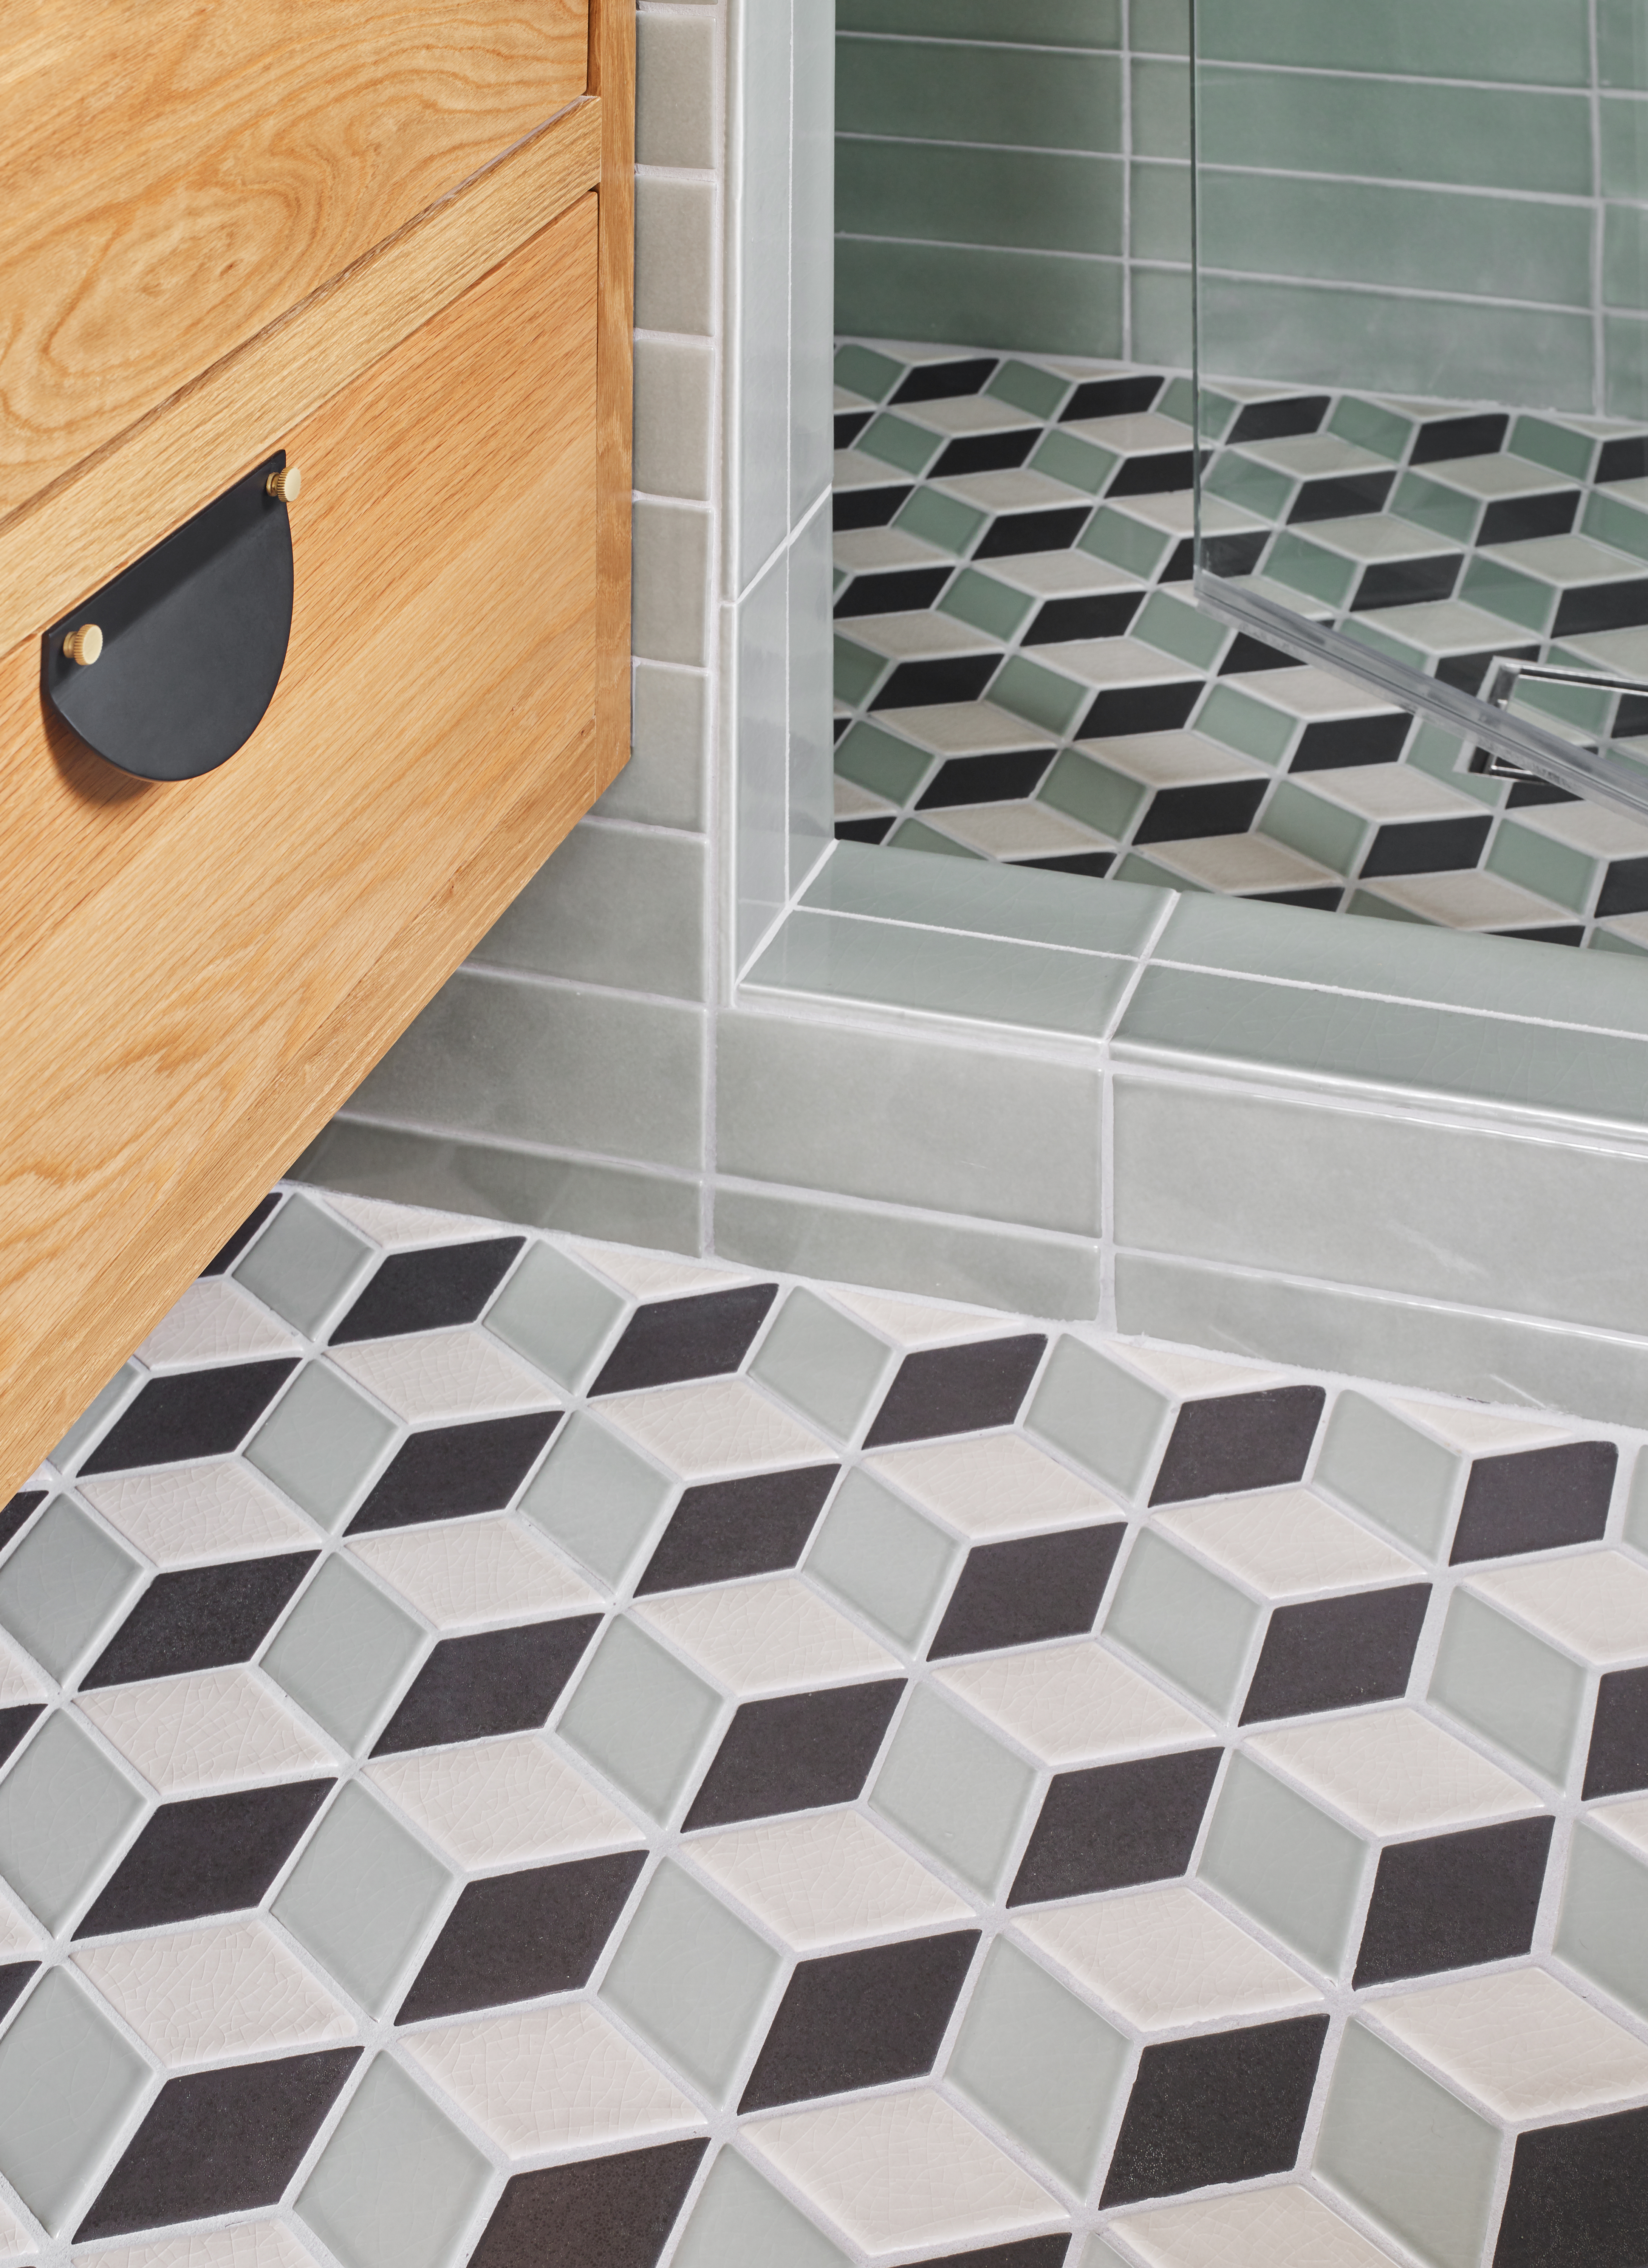 """Playfully called the """"stair step floor"""", interior designer Jessica Davis' patterned bathroom floor tiles maximize the """"wow"""" factor in this petite space. Modern tiles in our Rosemary green tie it all together."""